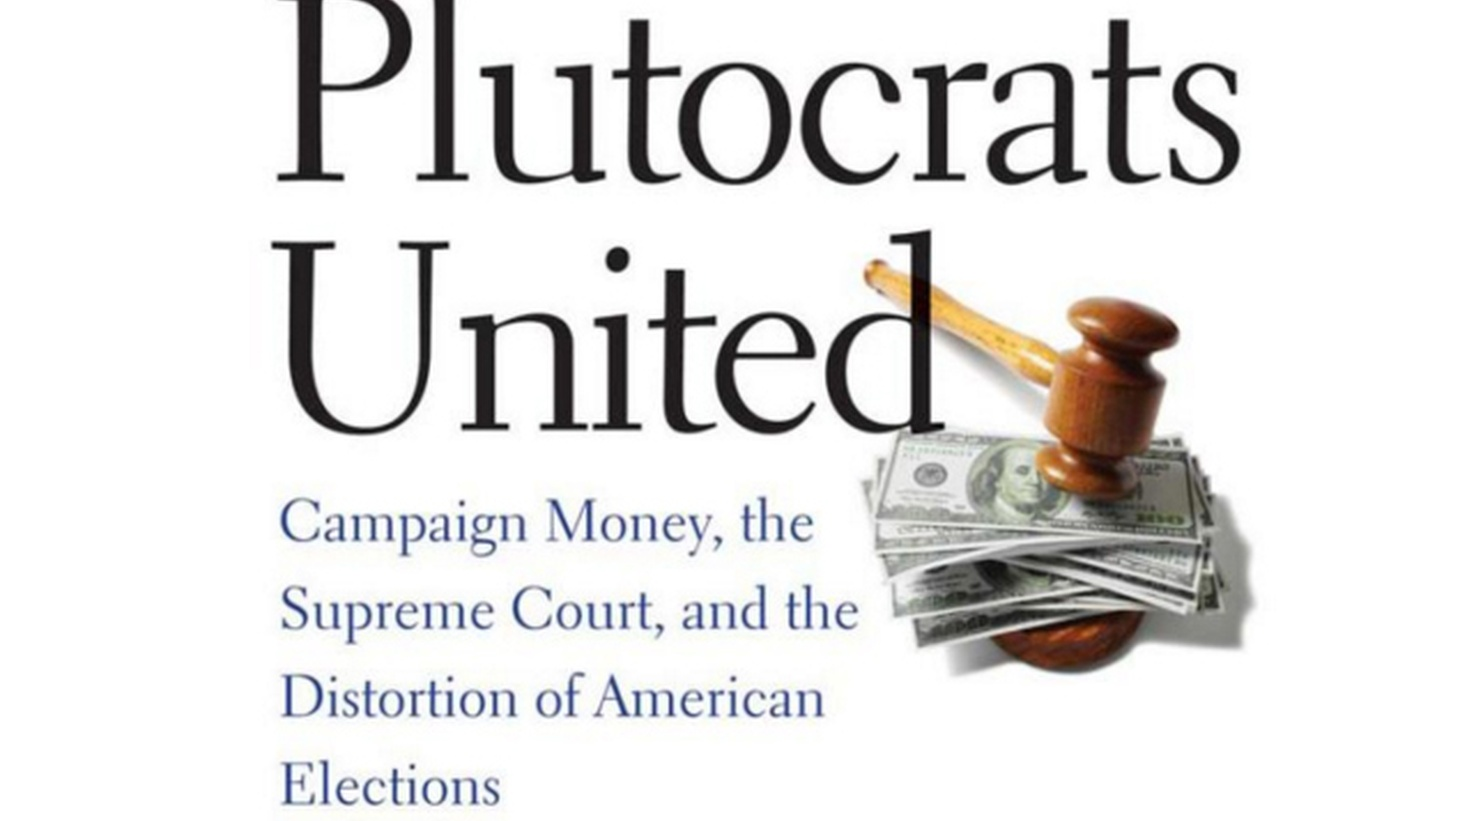 Today we start with the author of a new book on campaign finance. He says that the problem of money in politics goes way beyond Citizens United.